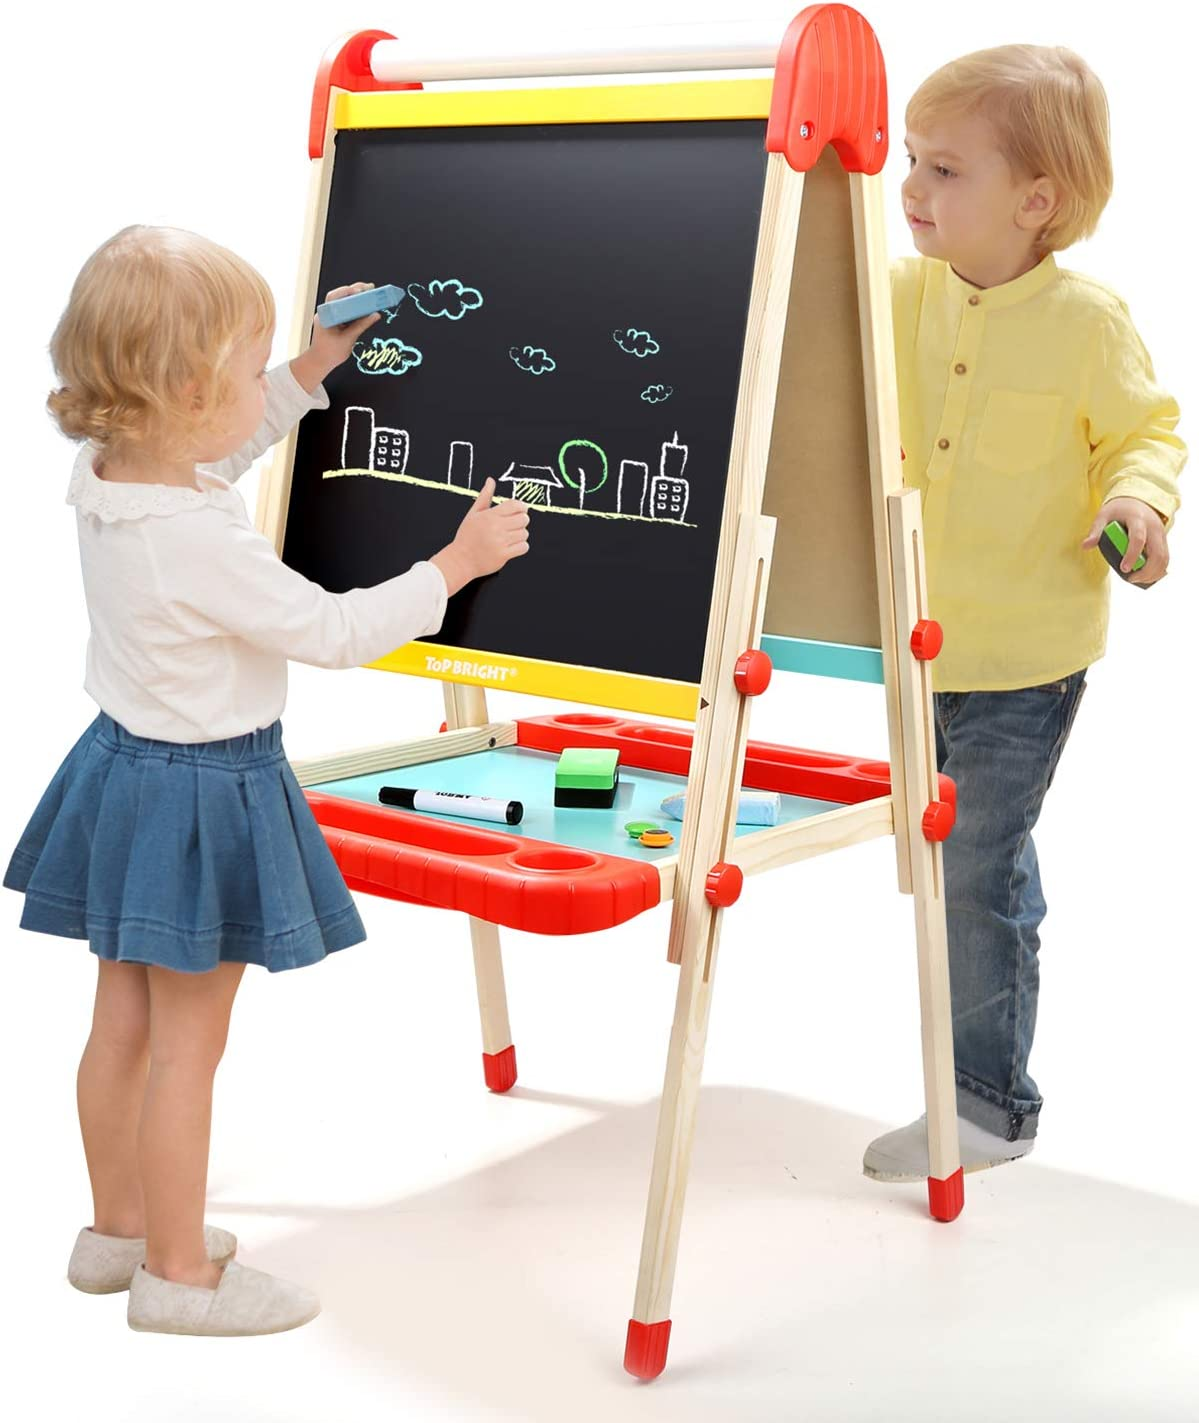 Top 9 Best Easel For Toddlers & Kids (2020 Reviews) 8